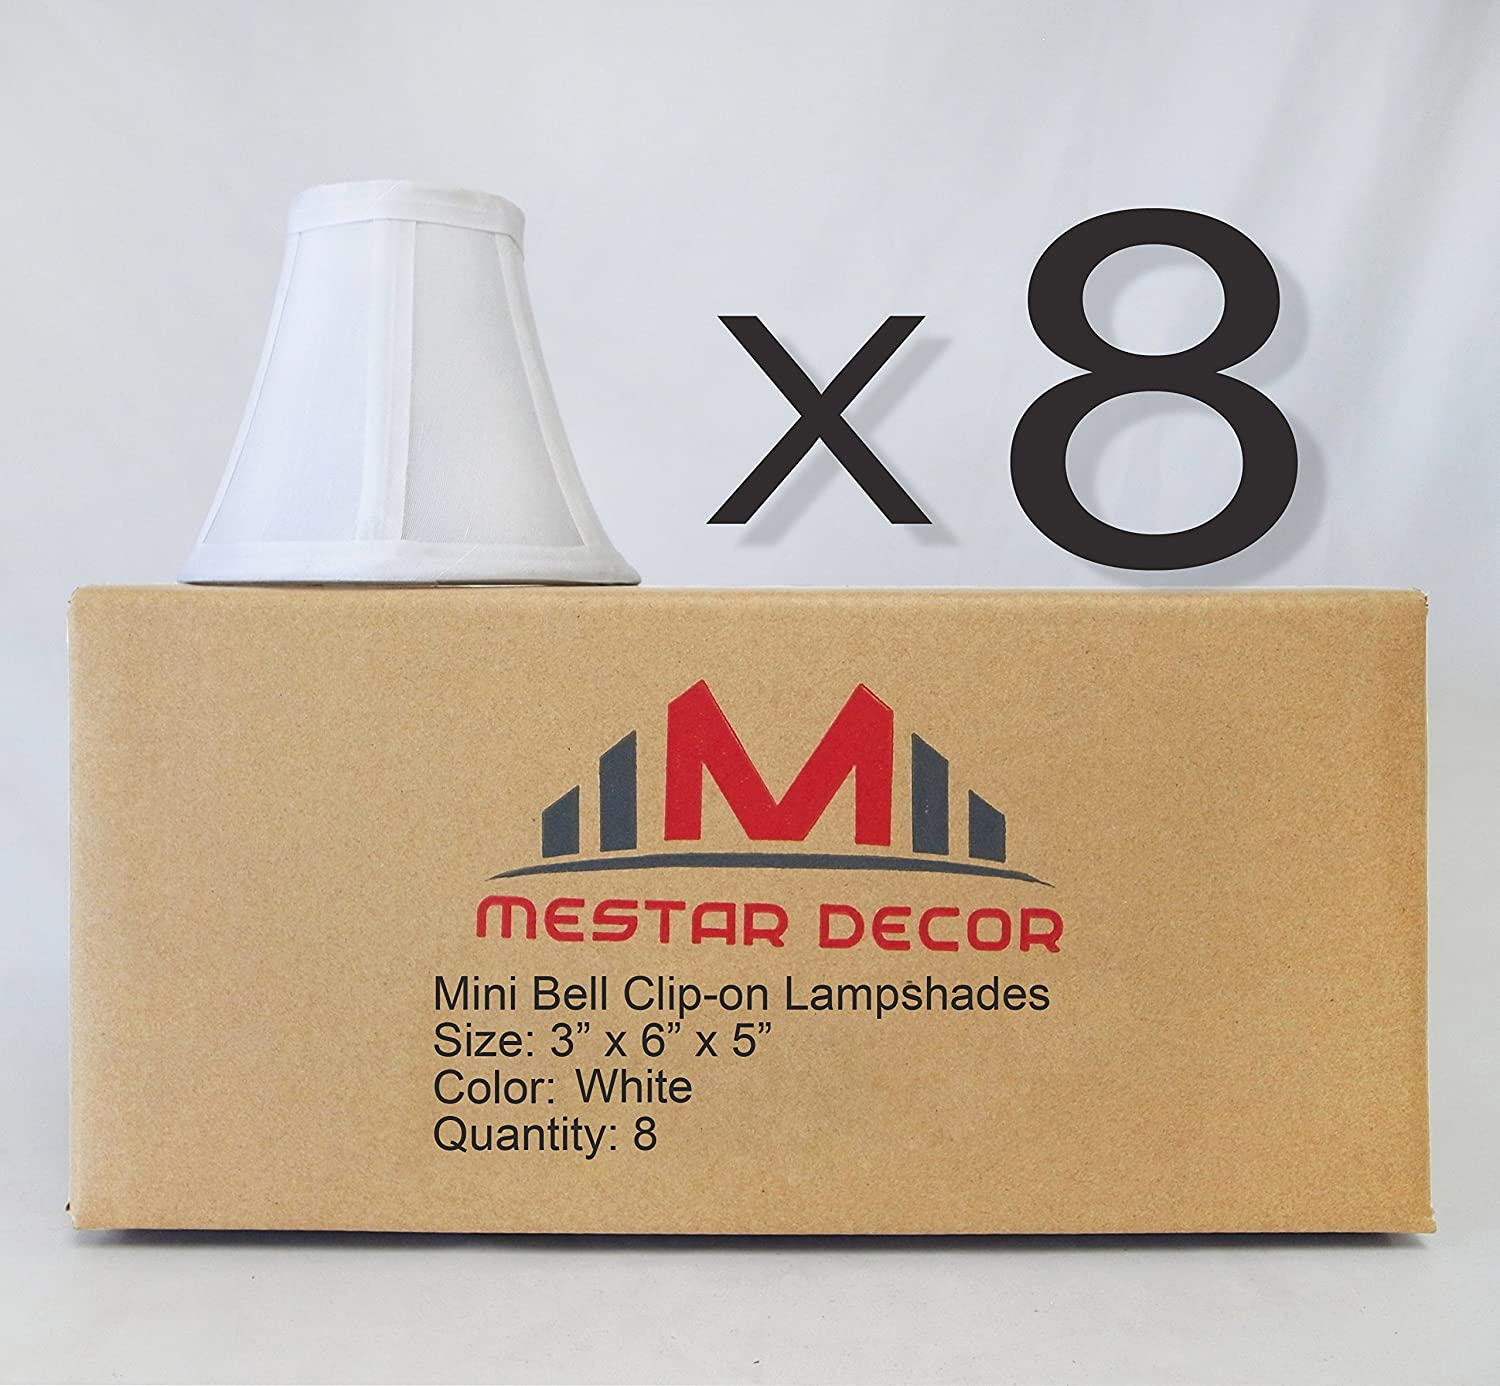 Mestar Decor 8-Pack Mini Bell Candelabra Lamp Shade Lampshade 5H Clip On Style 8pcs for Chandeliers Black Color